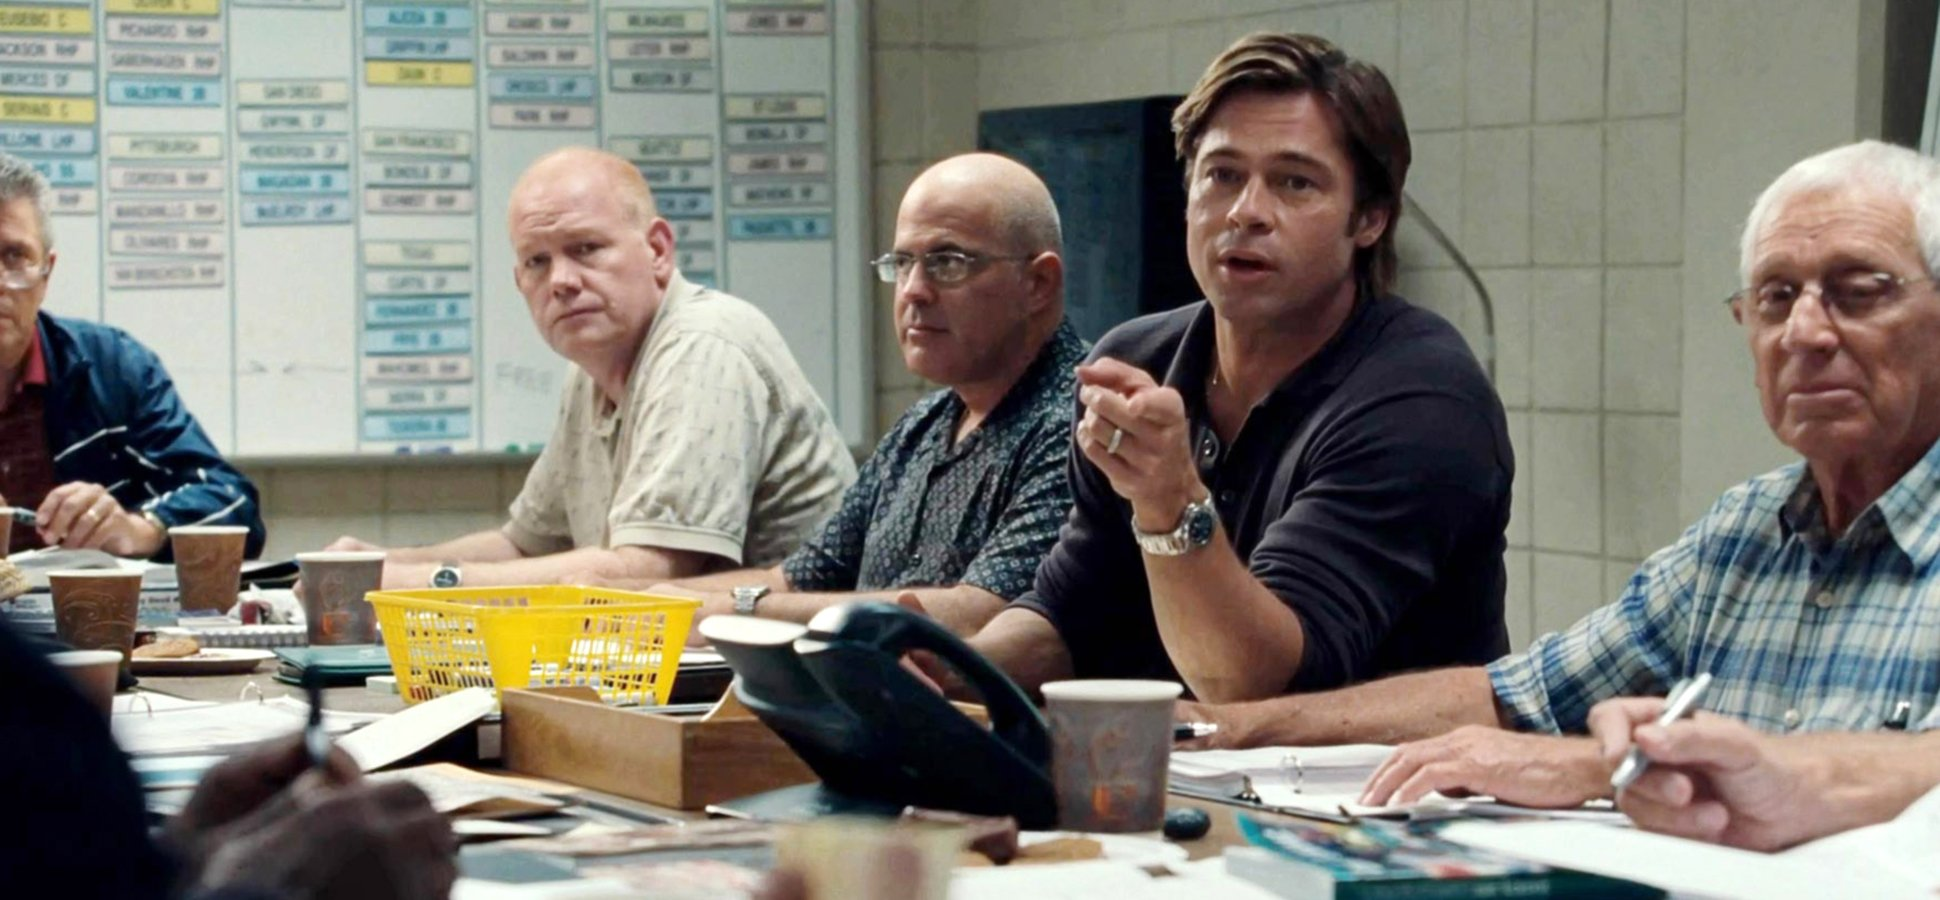 8 Underrated Movies That Show What It's Like to Be an Entrepreneur